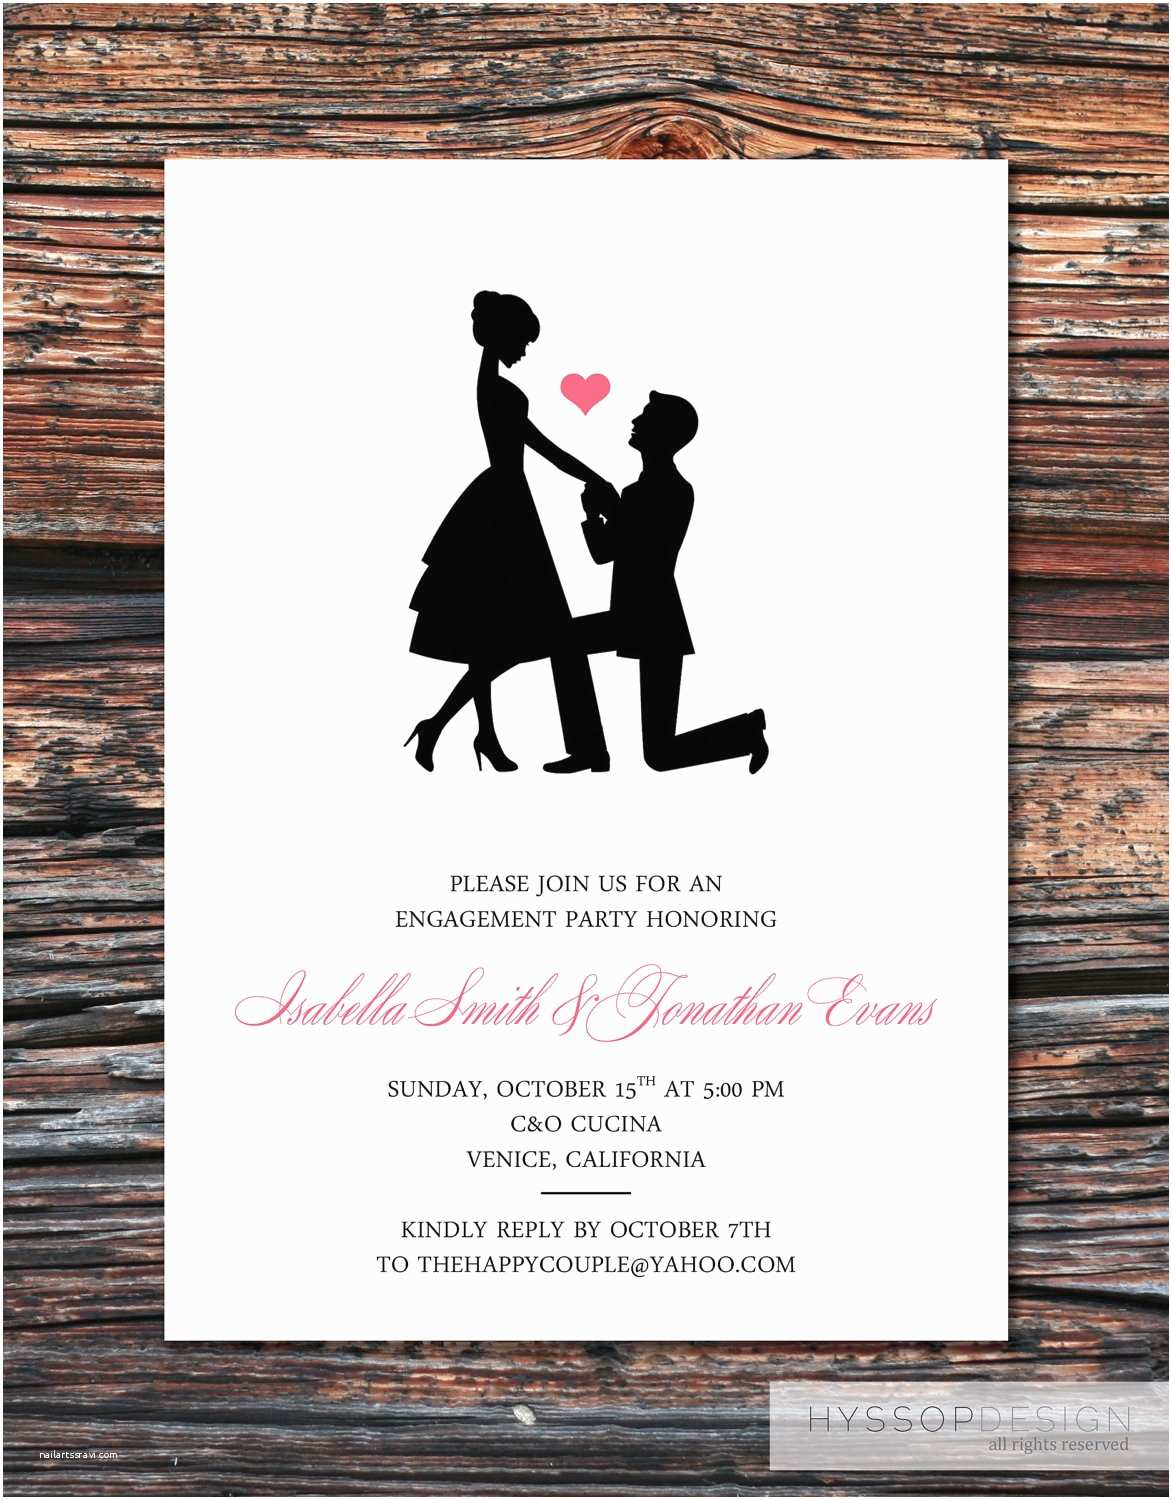 Wedding Engagement Party Invitations Printable Diy Sweet Silhouette Proposal Engagement Party